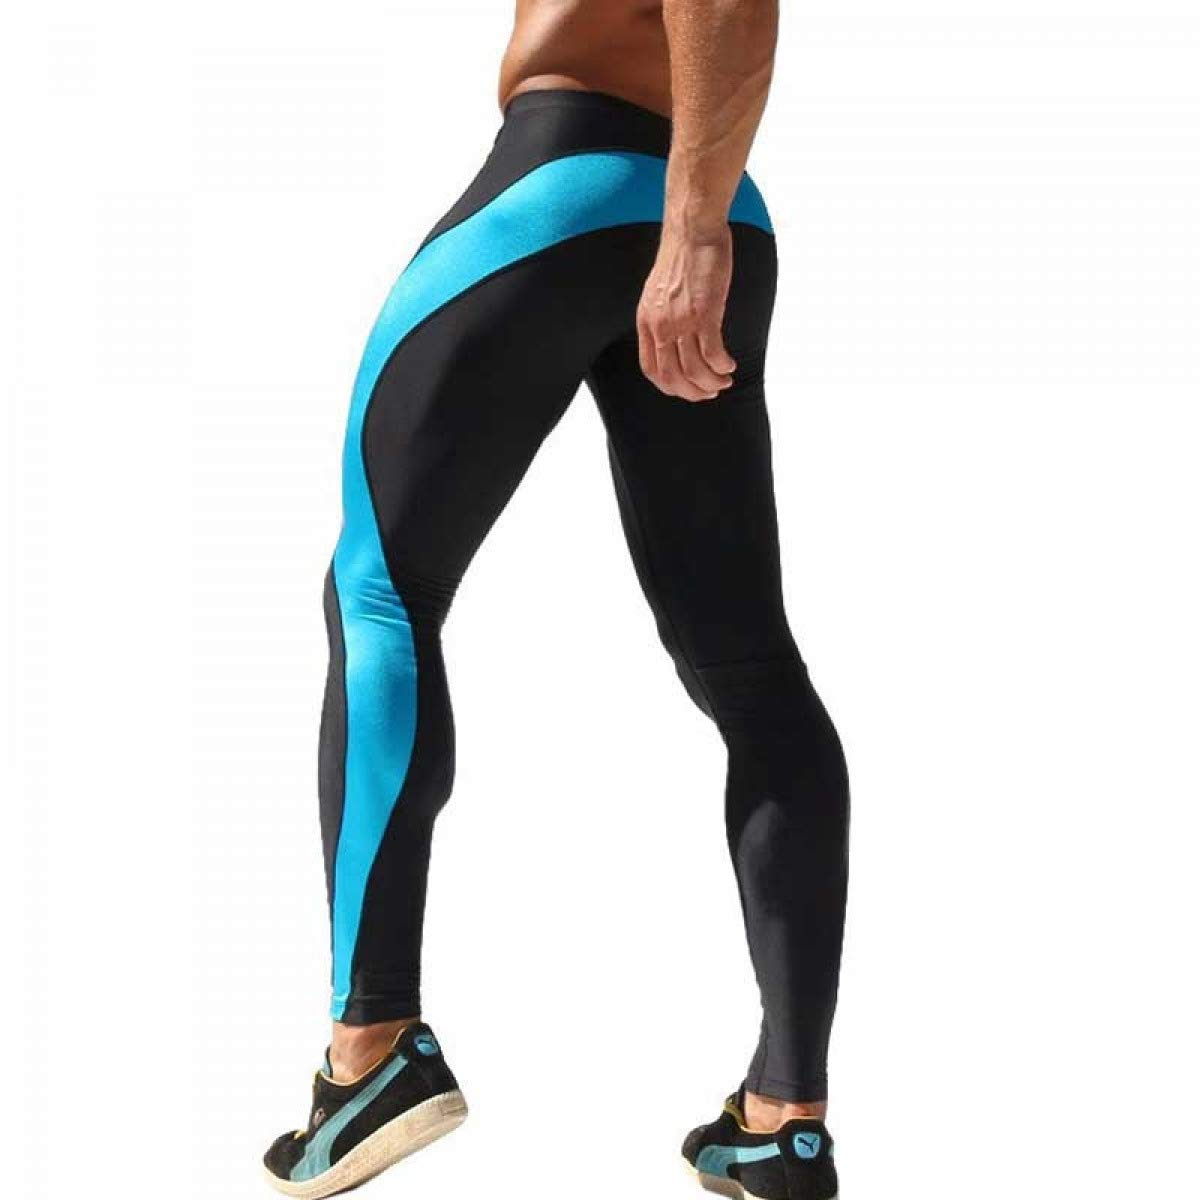 Amazon.com: HOMZE Mens Running Tights High Stretchy Legging ...